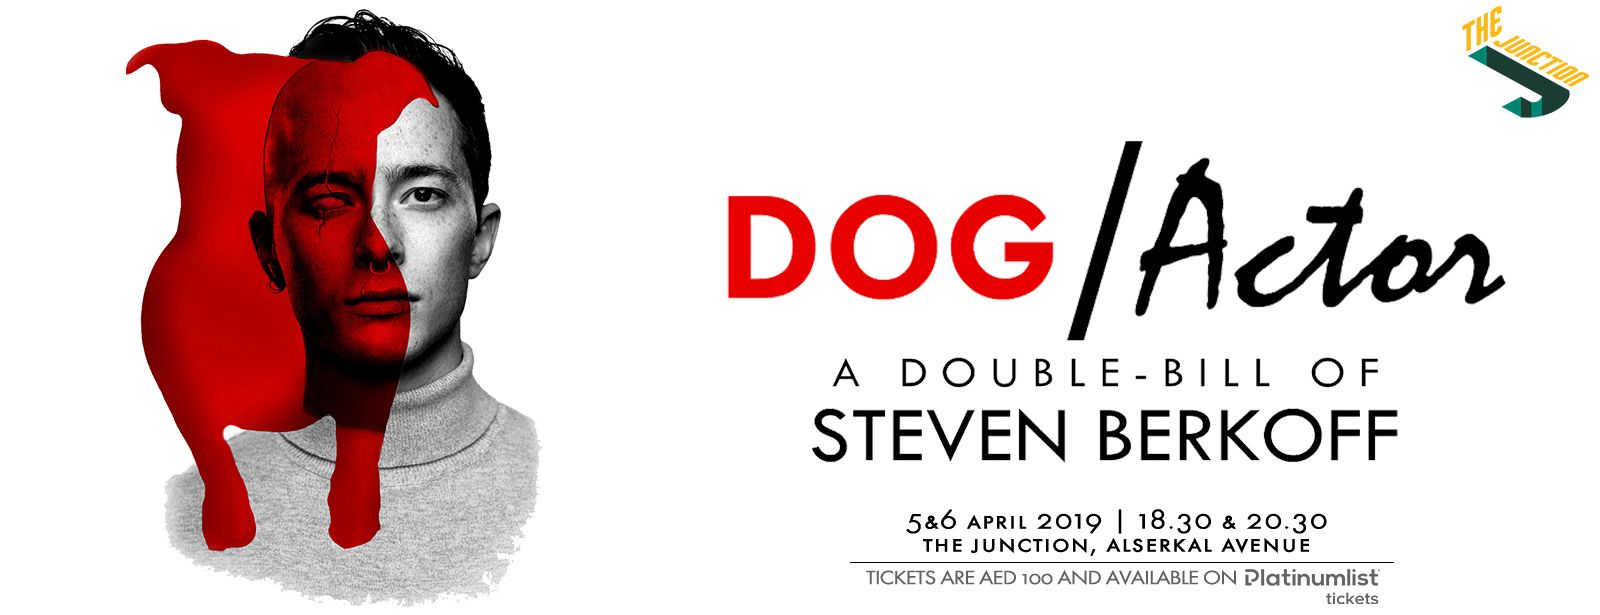 Dog/Actor by Steven Berkoff